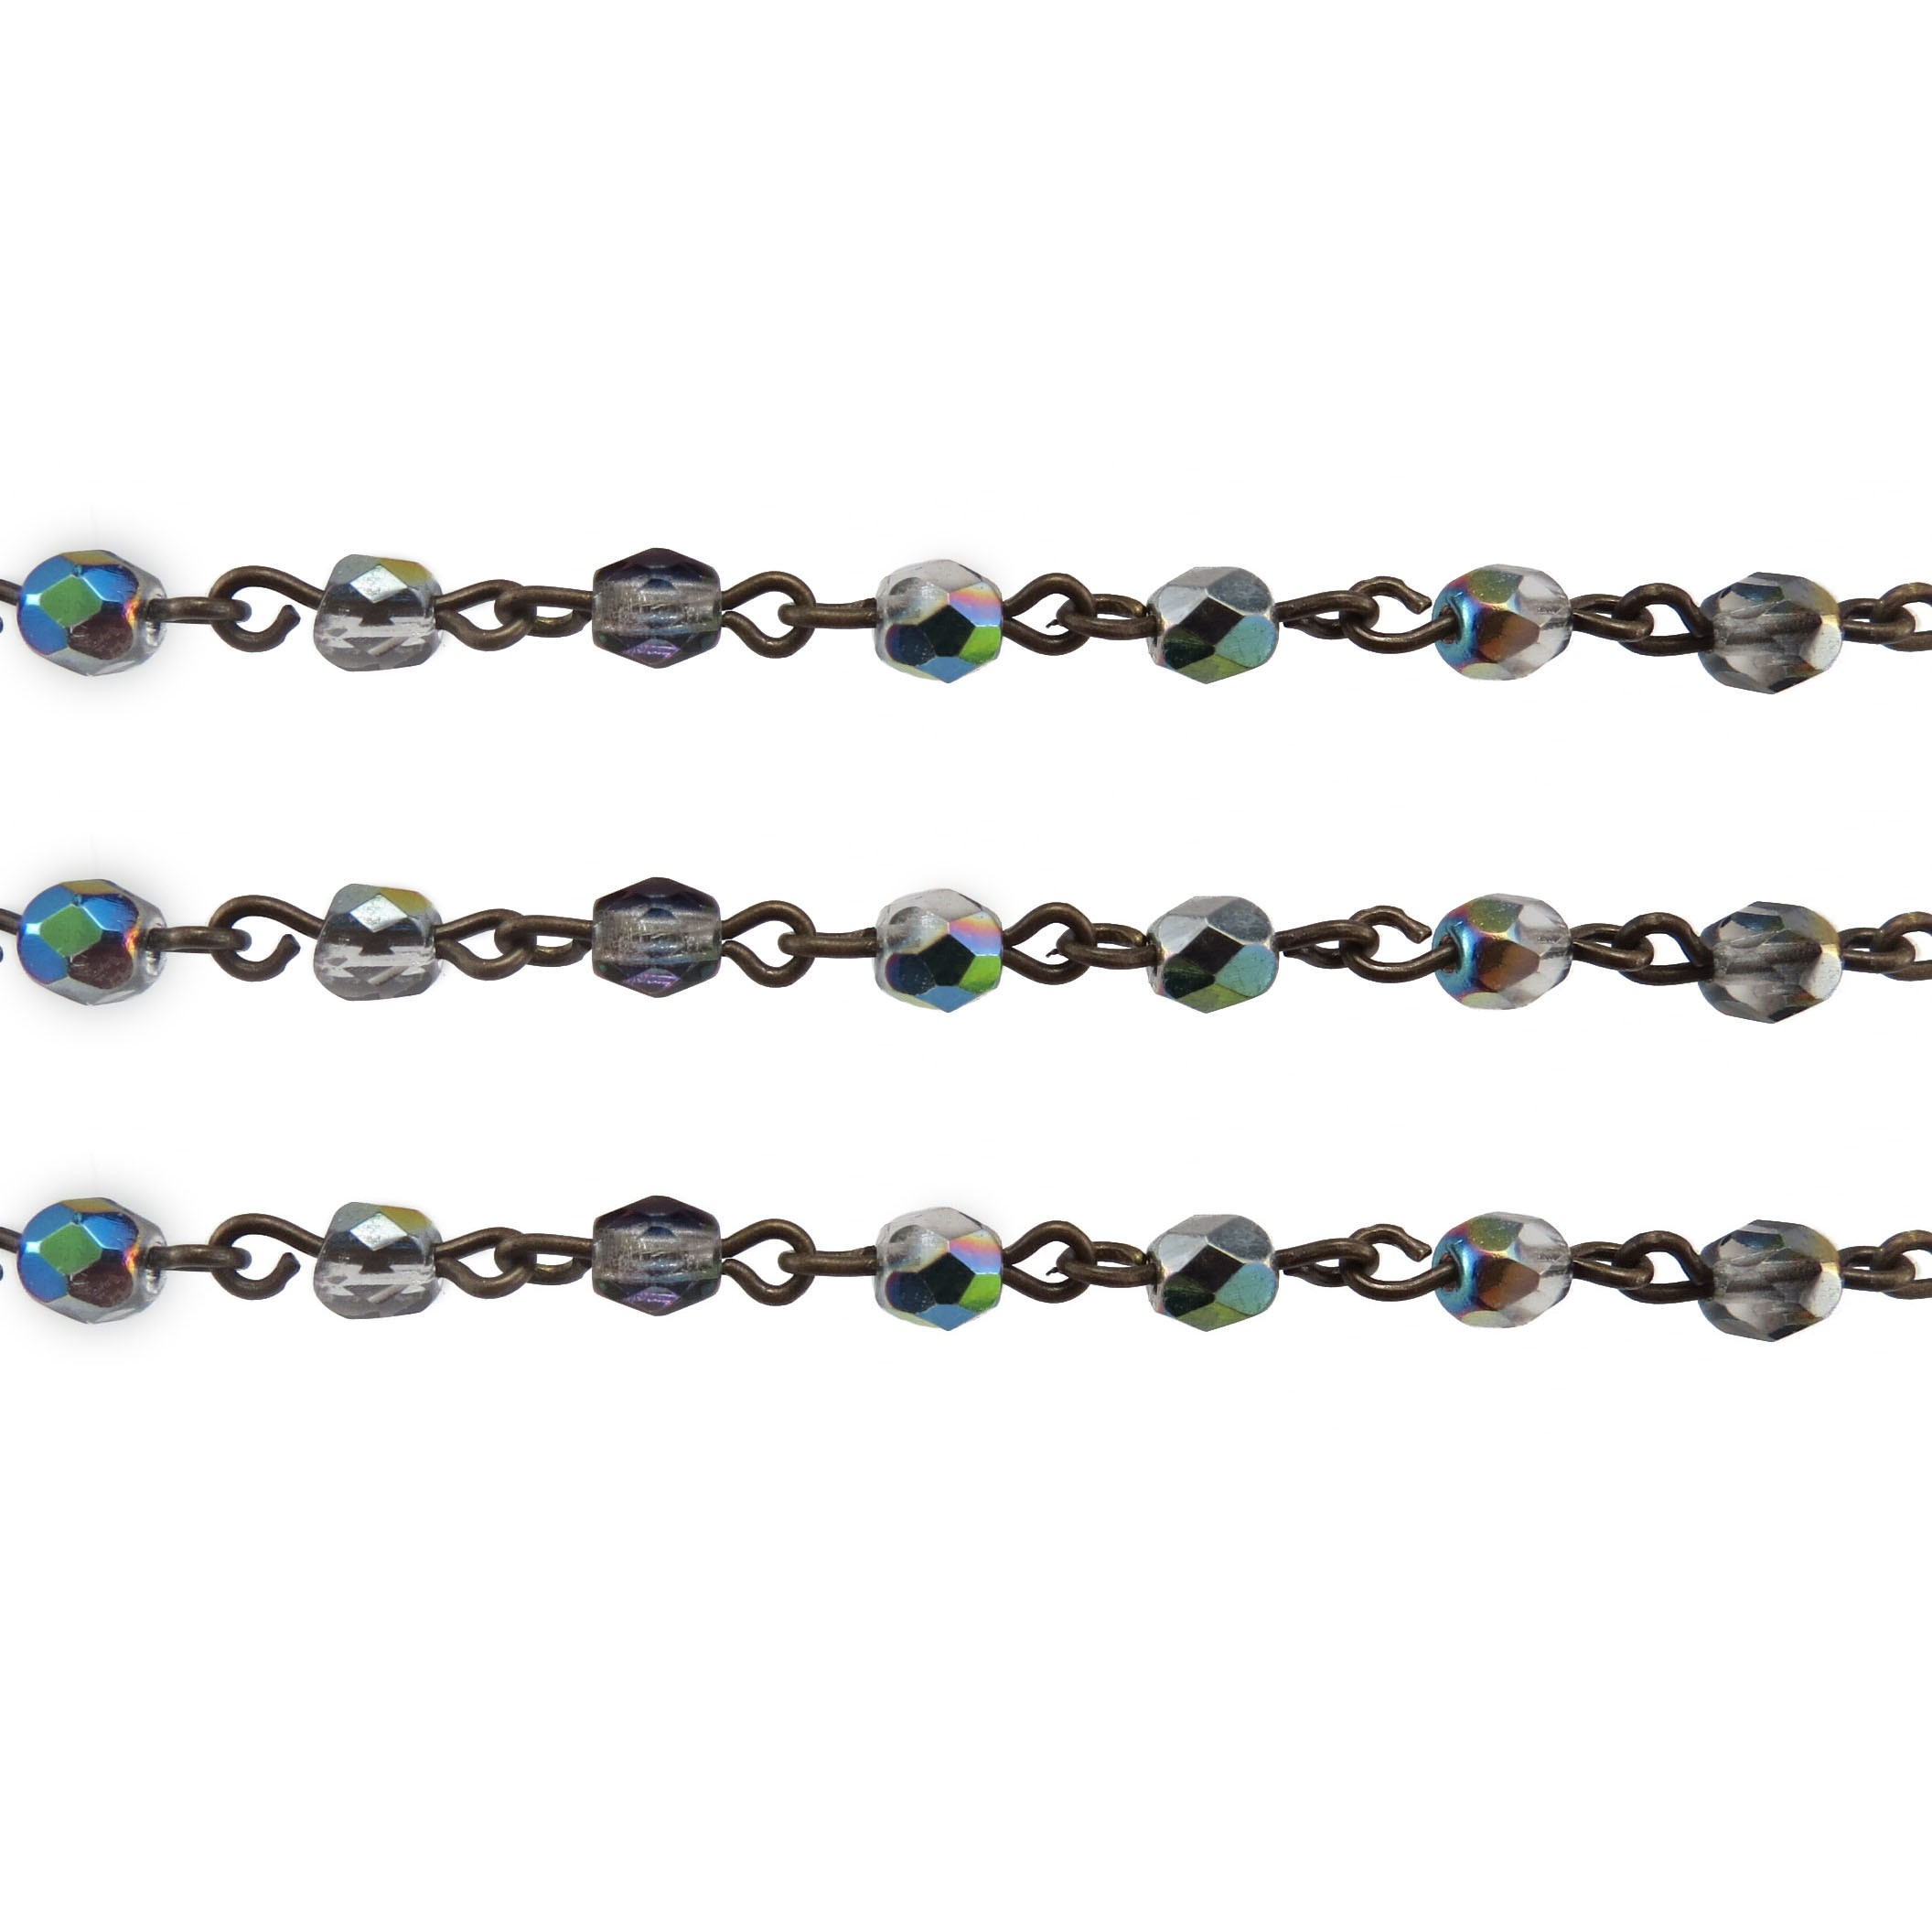 Czech Linked Rosary Chain, 4mm Crystal Marea Faceted Bead, Brass Linked Chain, (Sold by the Meter)